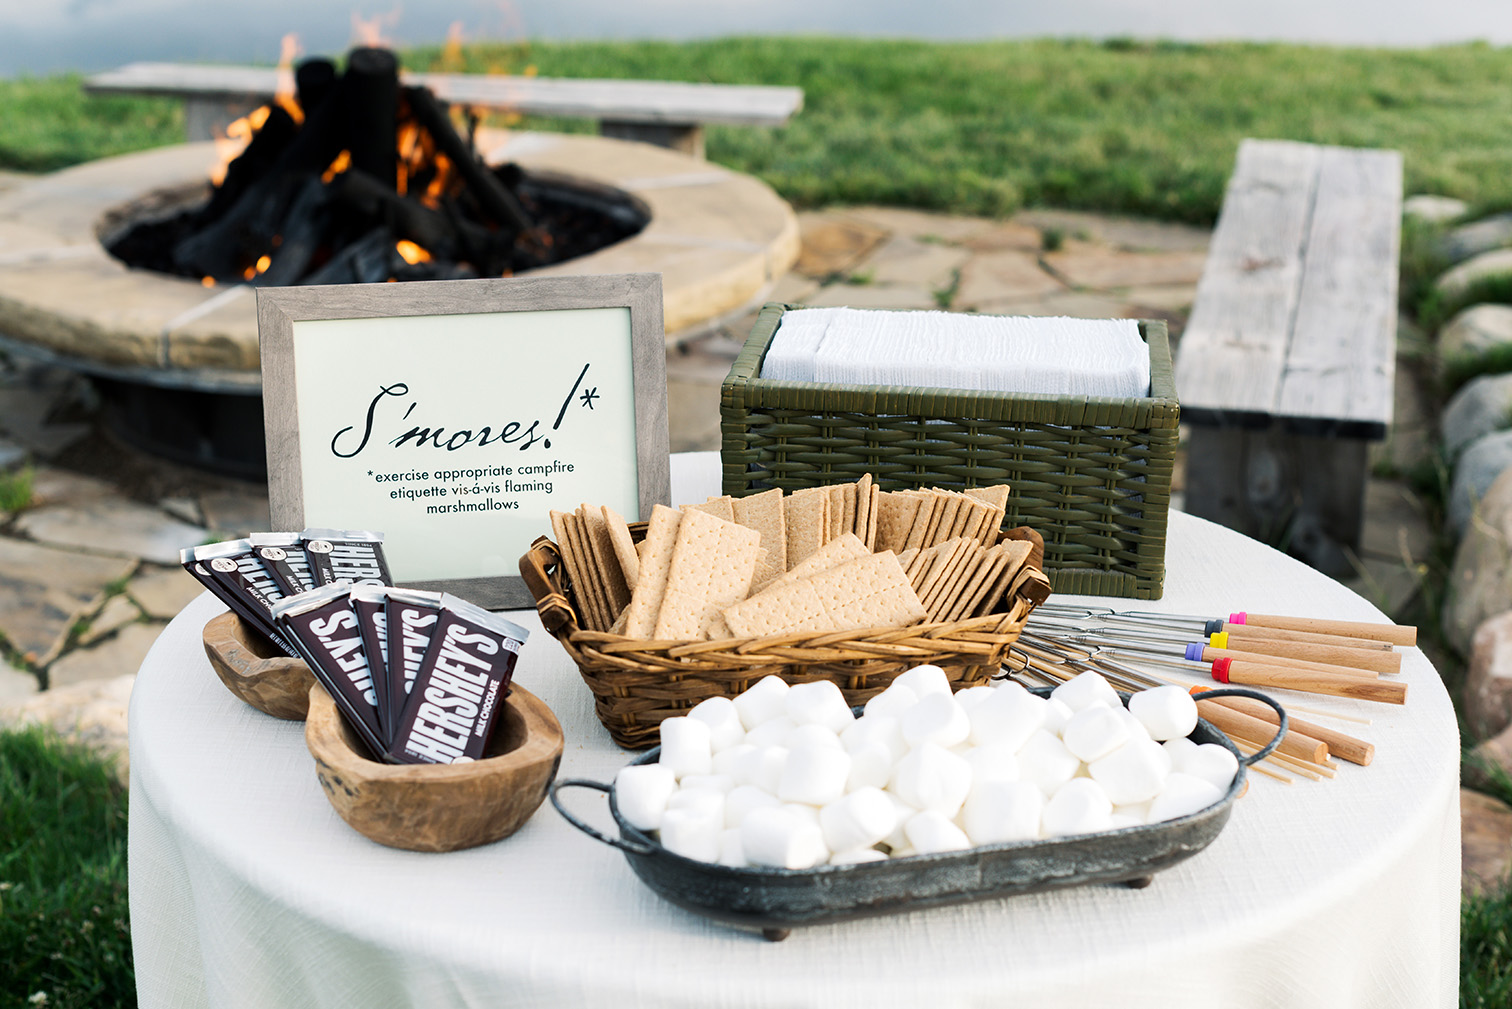 Strawberry Creek Ranch Granby Colorado, S'mores for Wedding Reception